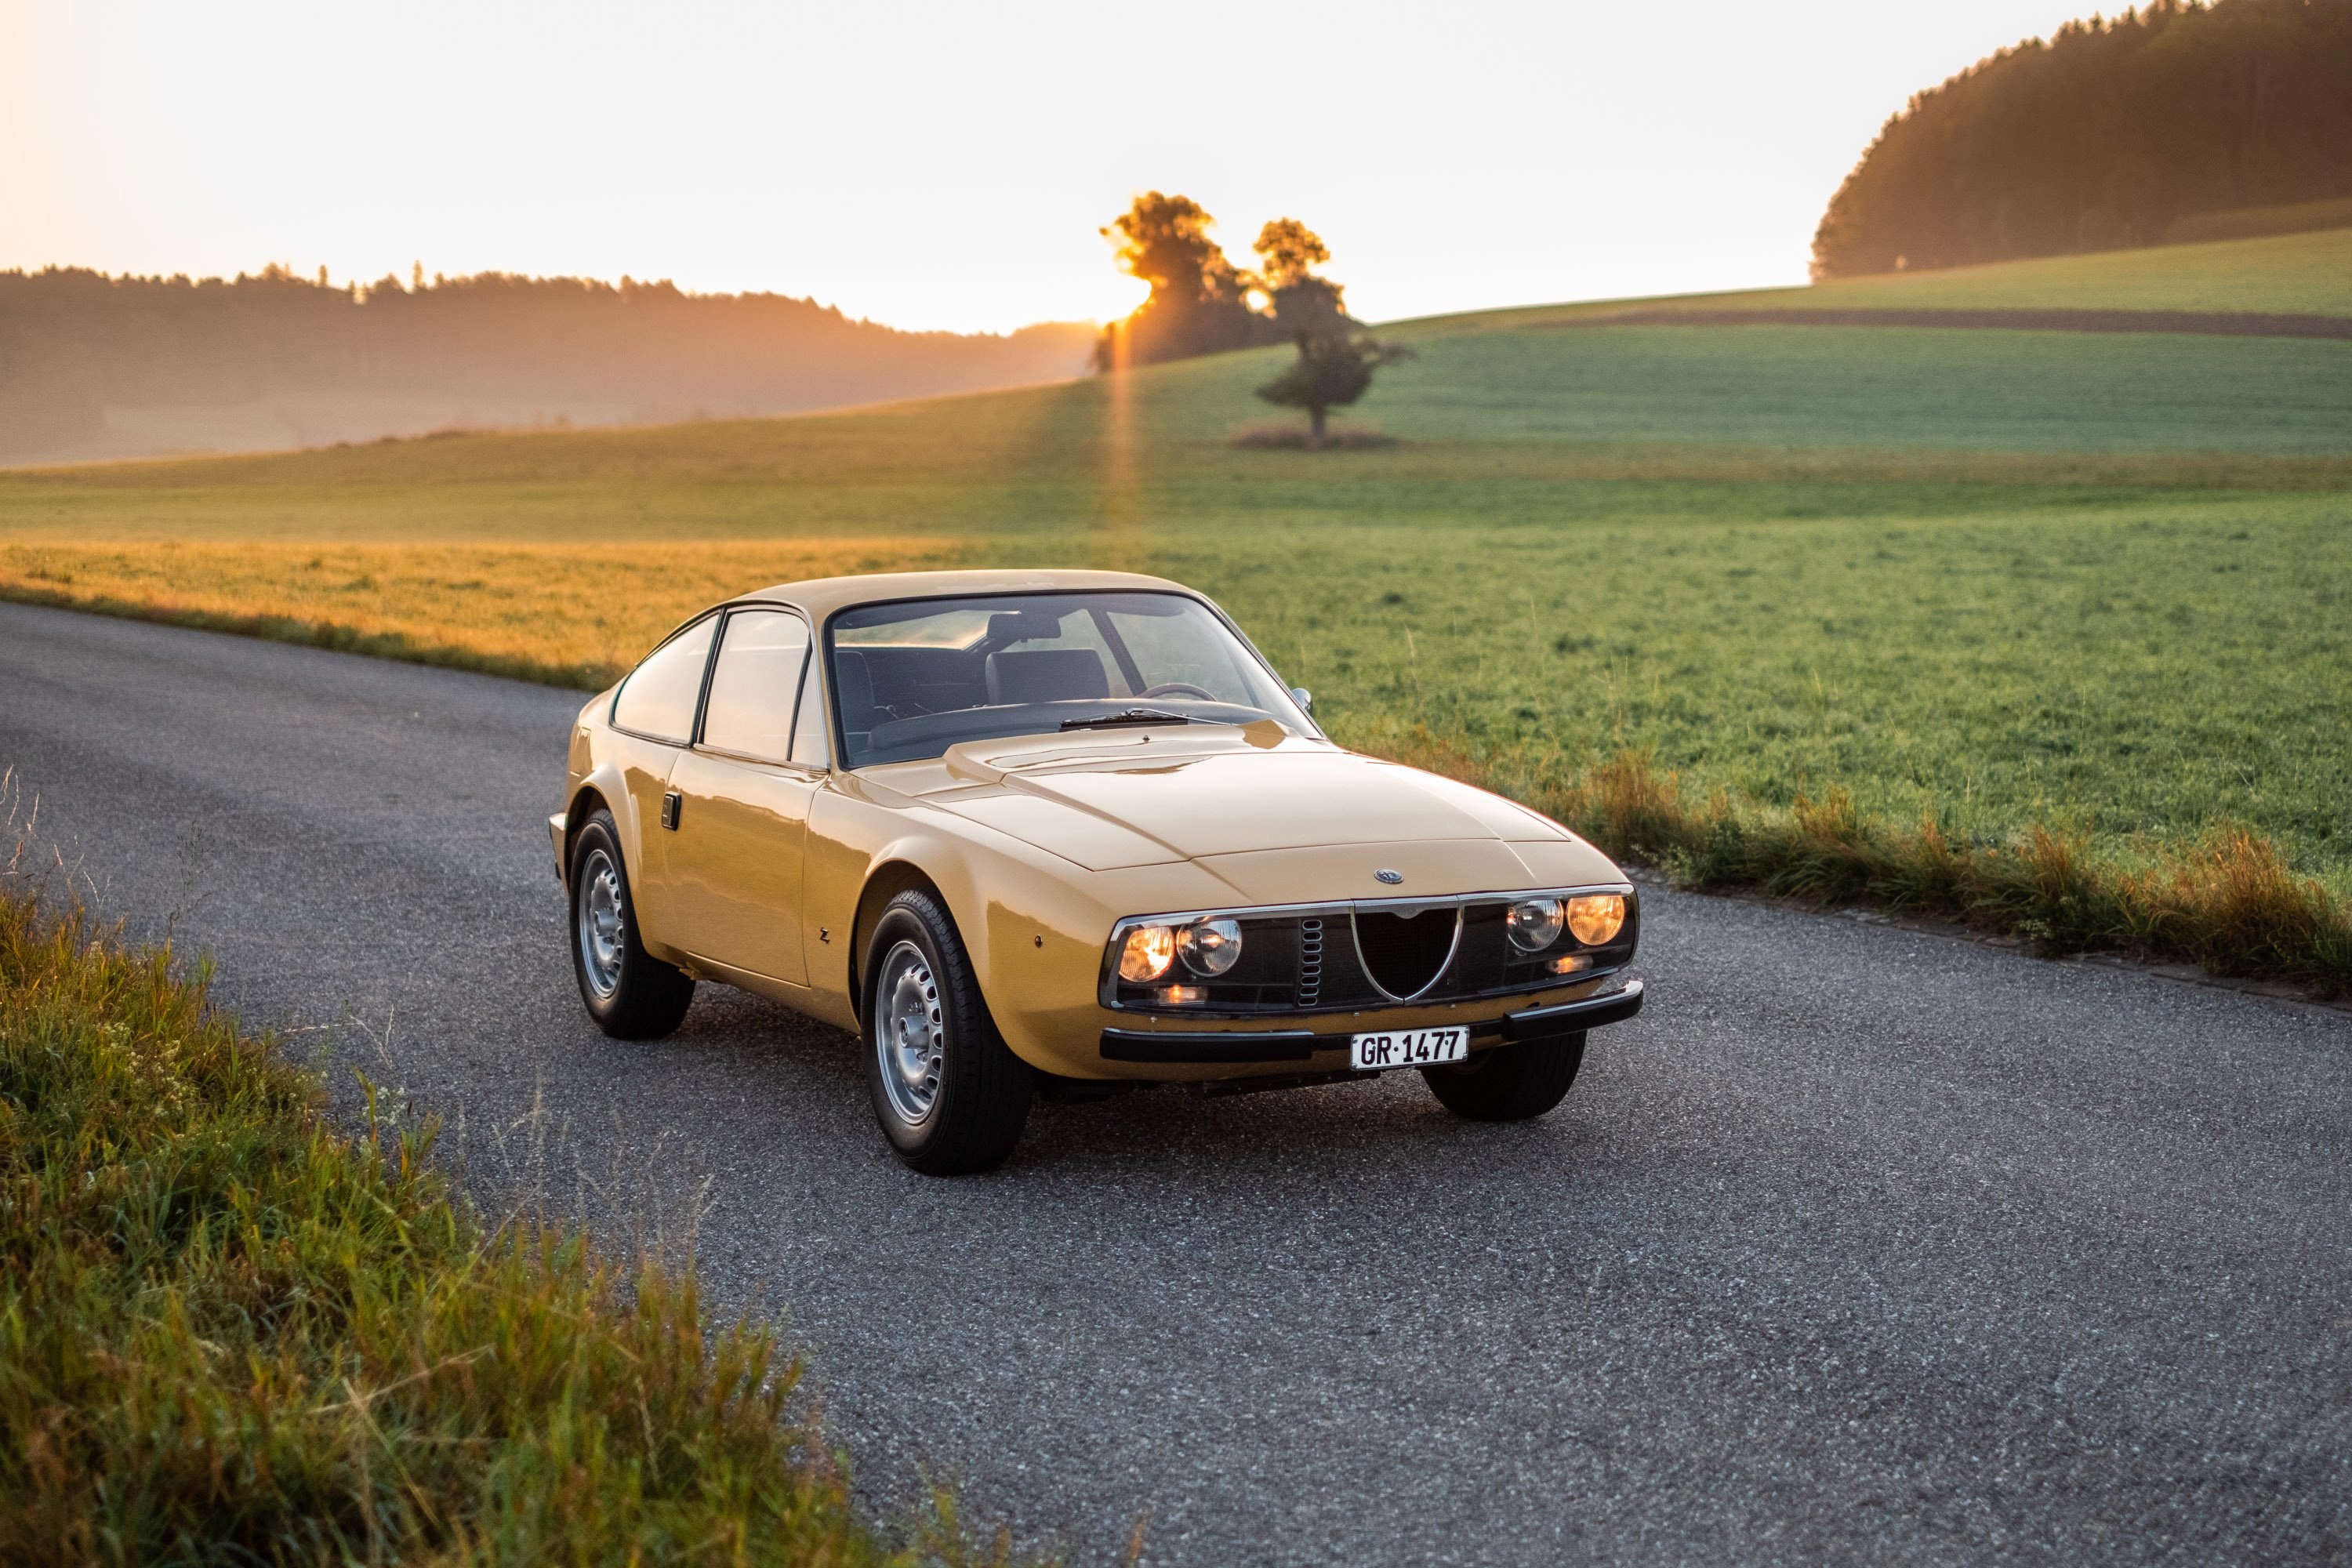 1280x1024 Alfa Romeo Junior Z 1280x1024 Resolution Hd 4k Wallpapers Images Backgrounds Photos And Pictures